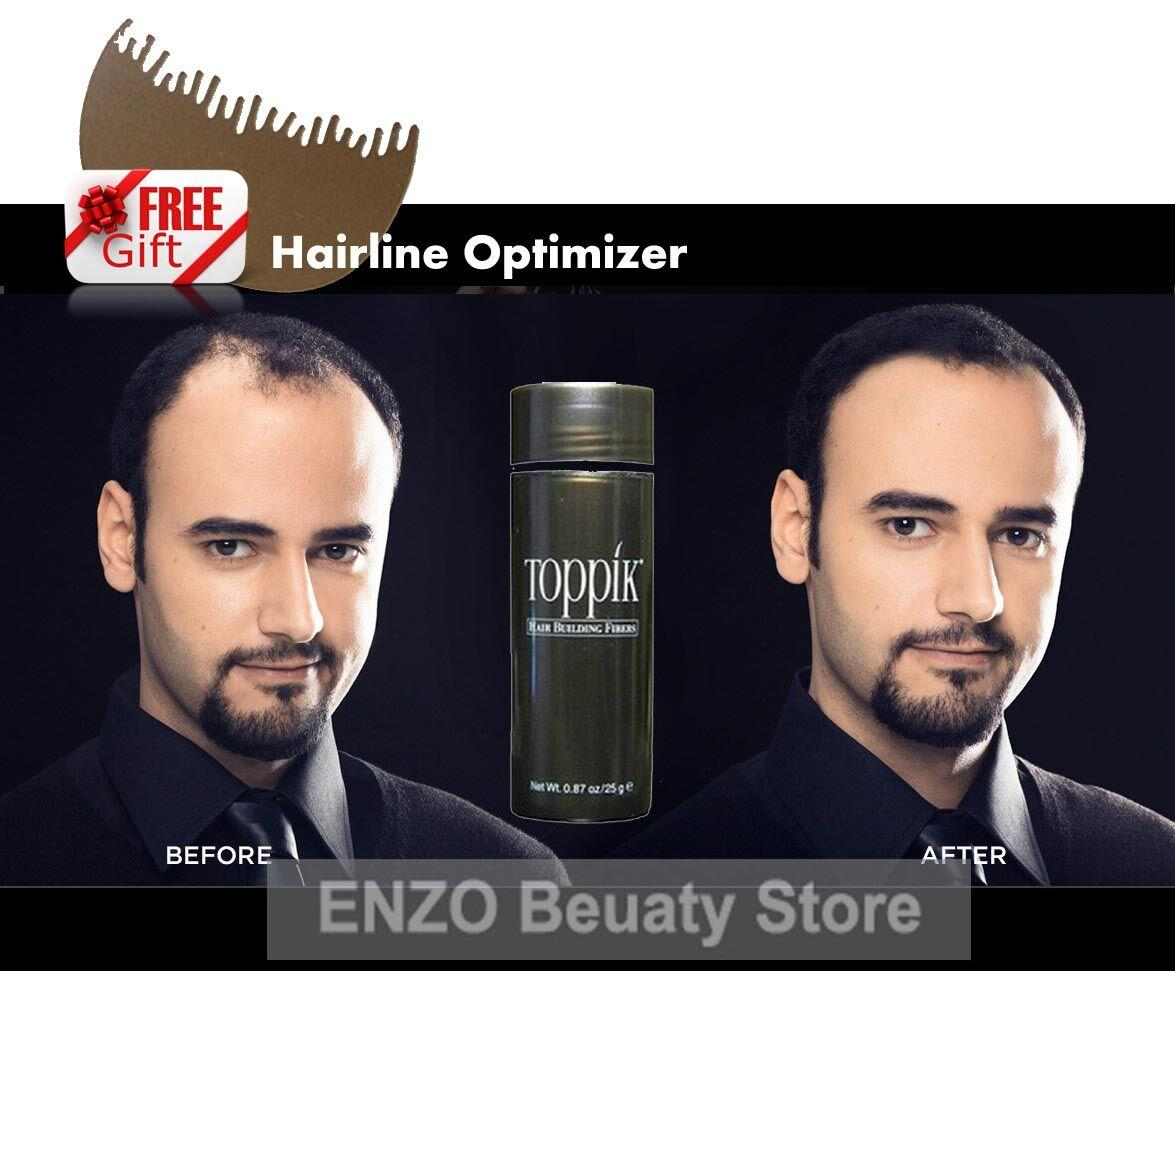 toppik hair building fibers with hairline optimizer, men women